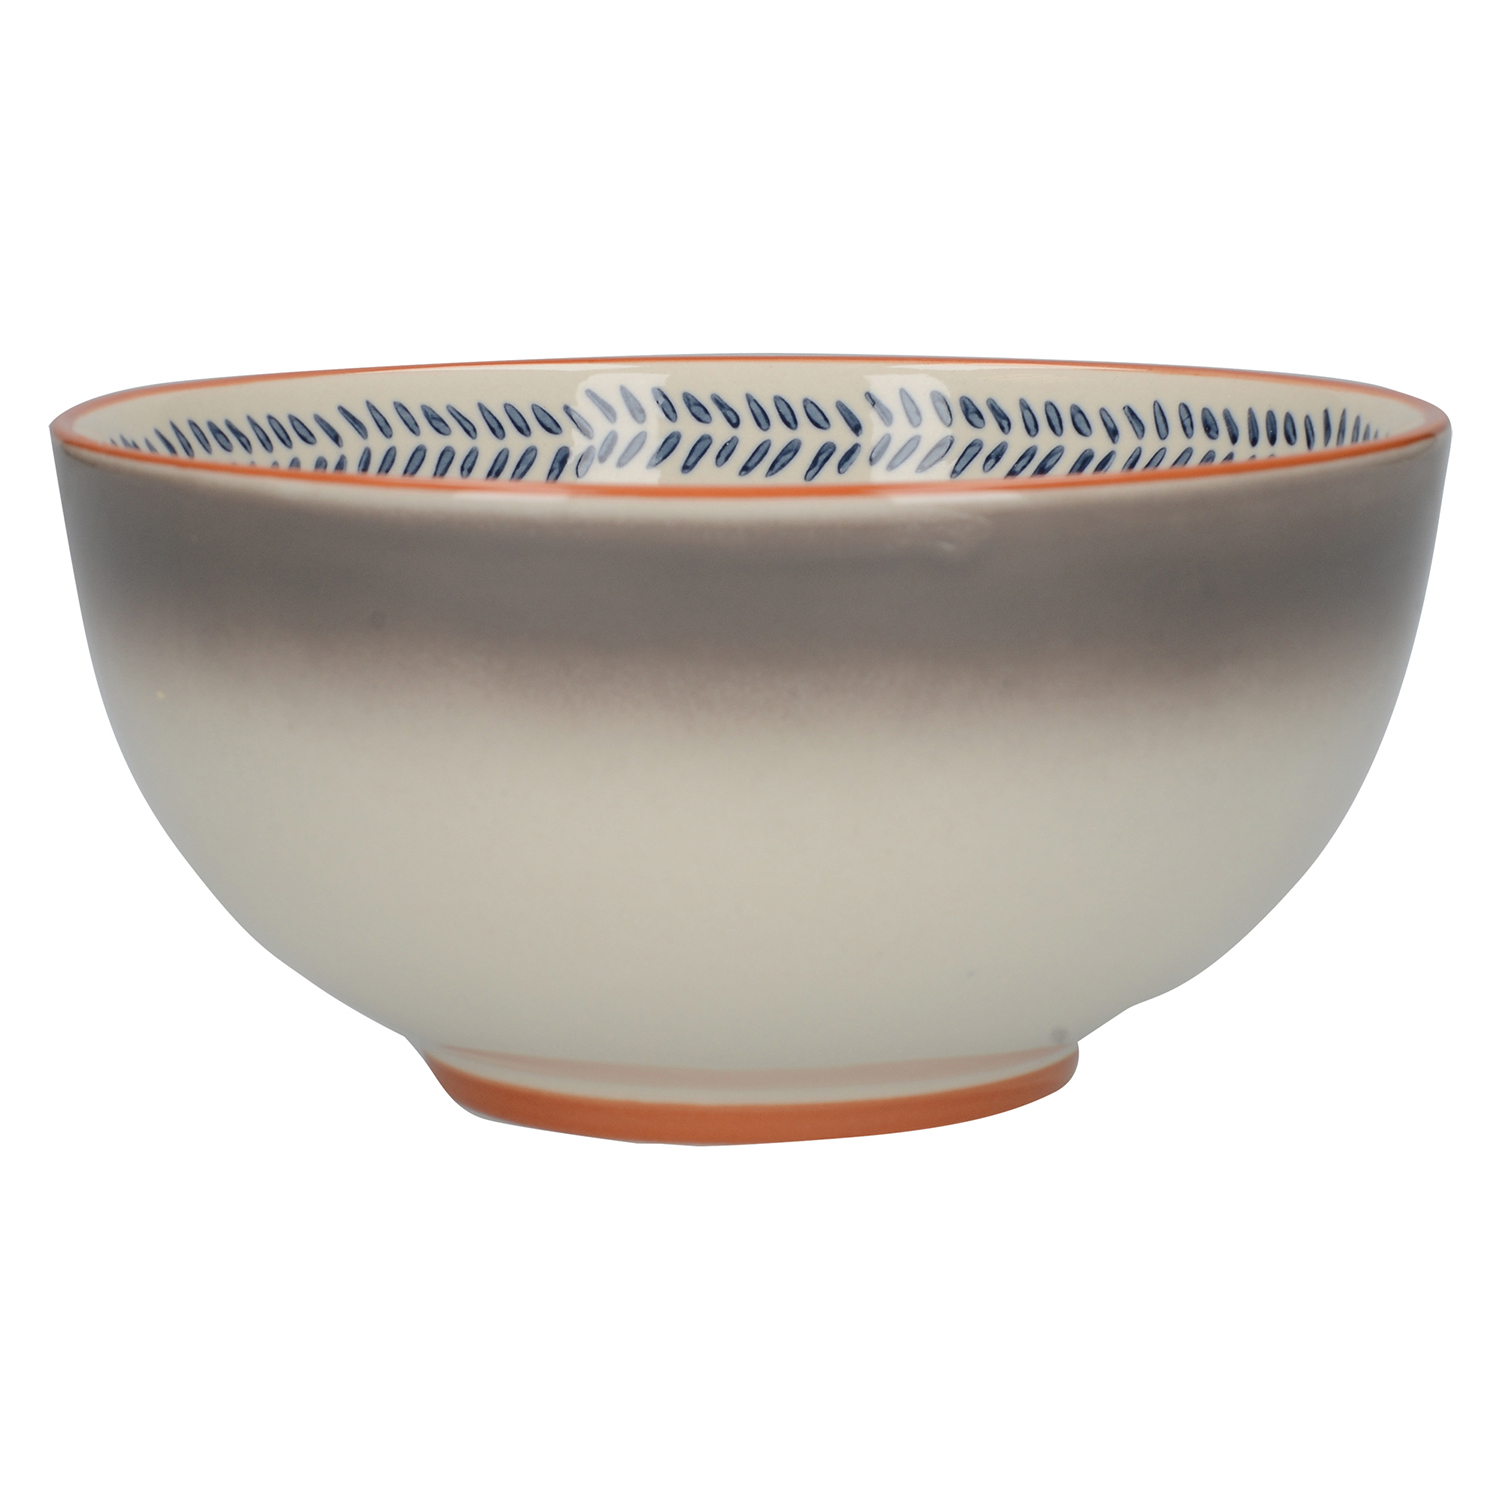 Image of Drift Cereal Bowl, Ombre Grey